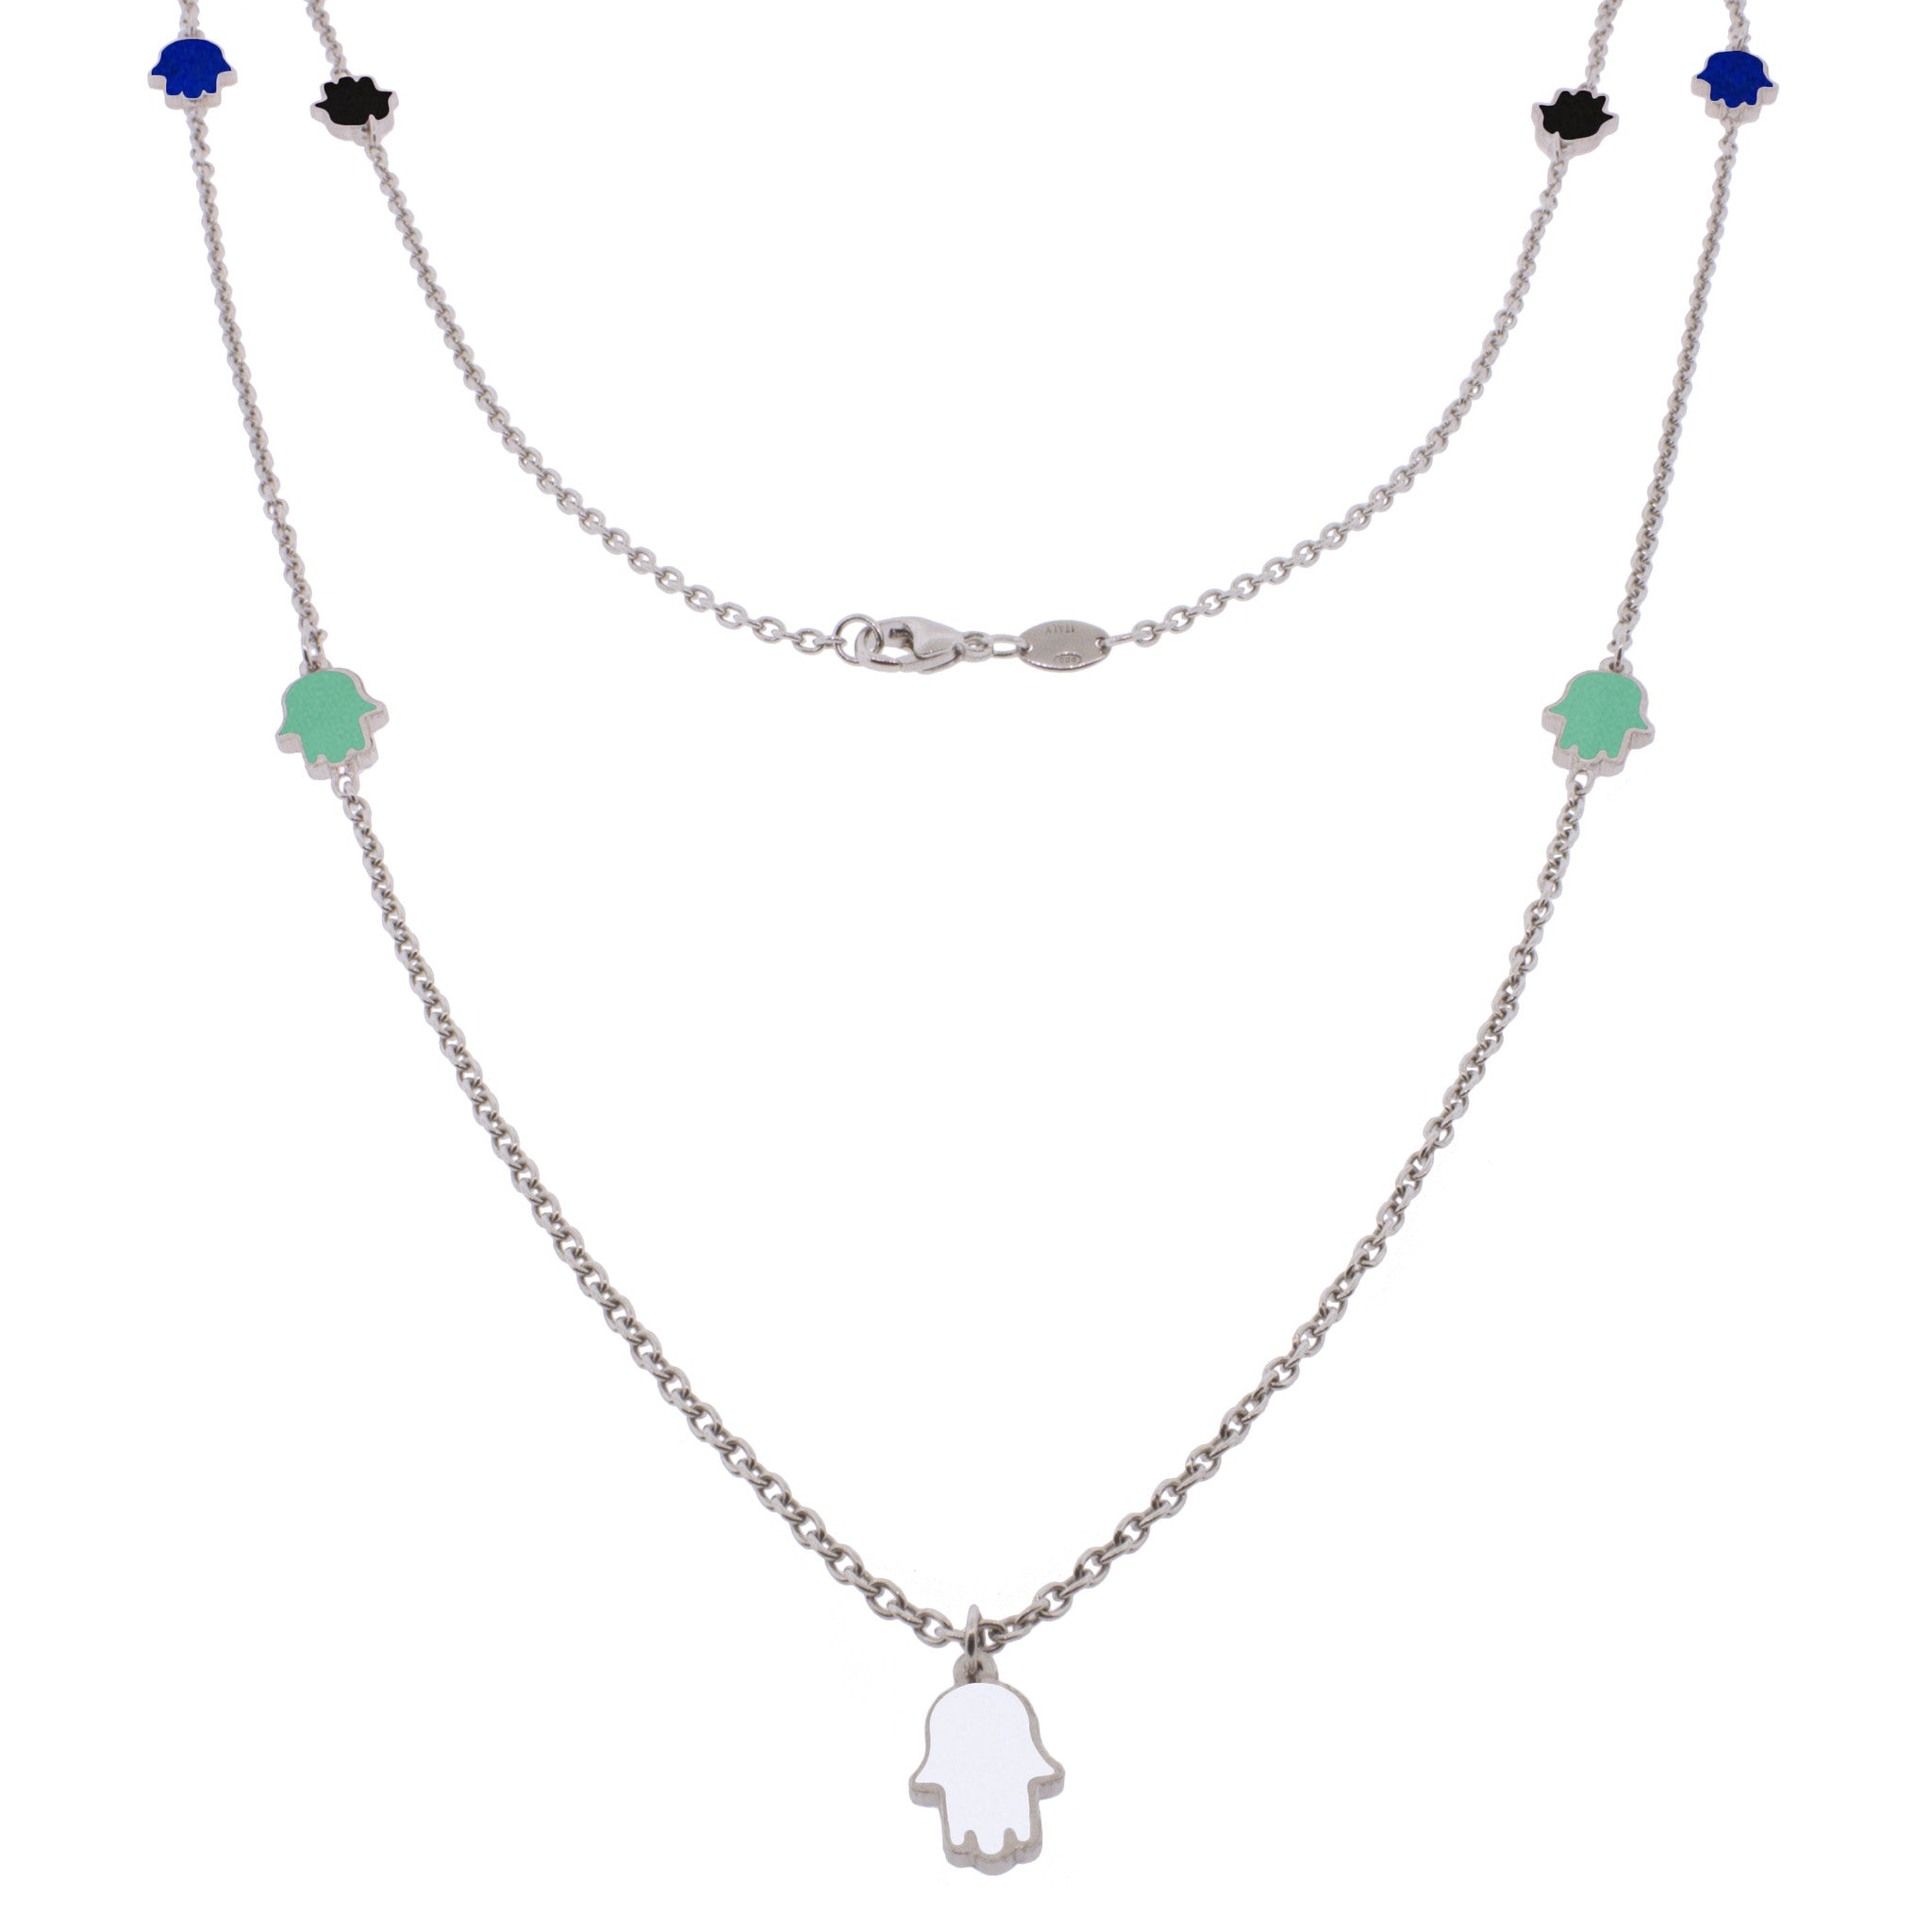 36-inch Touch of Luck Sterling Silver Necklace - Color Splash